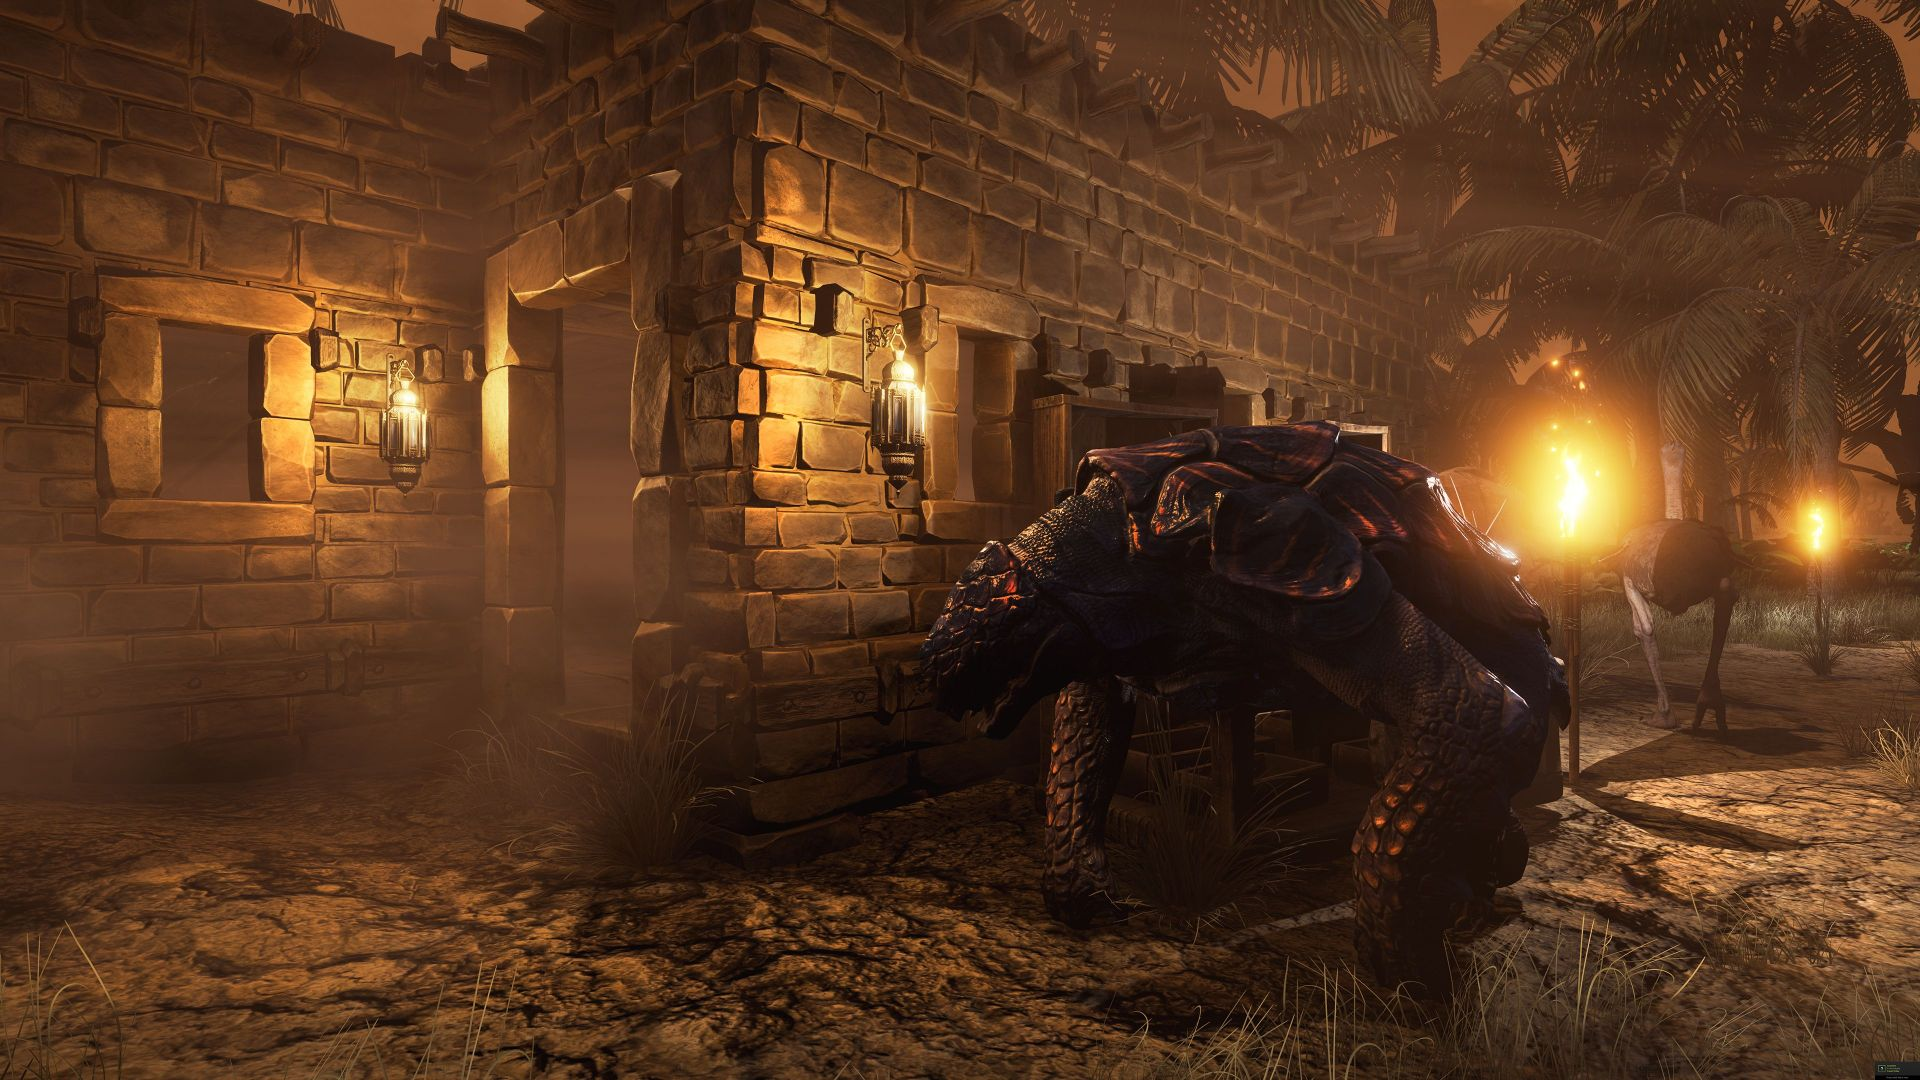 лучшие игры, Conan Exiles, screenshot, 4k (horizontal)